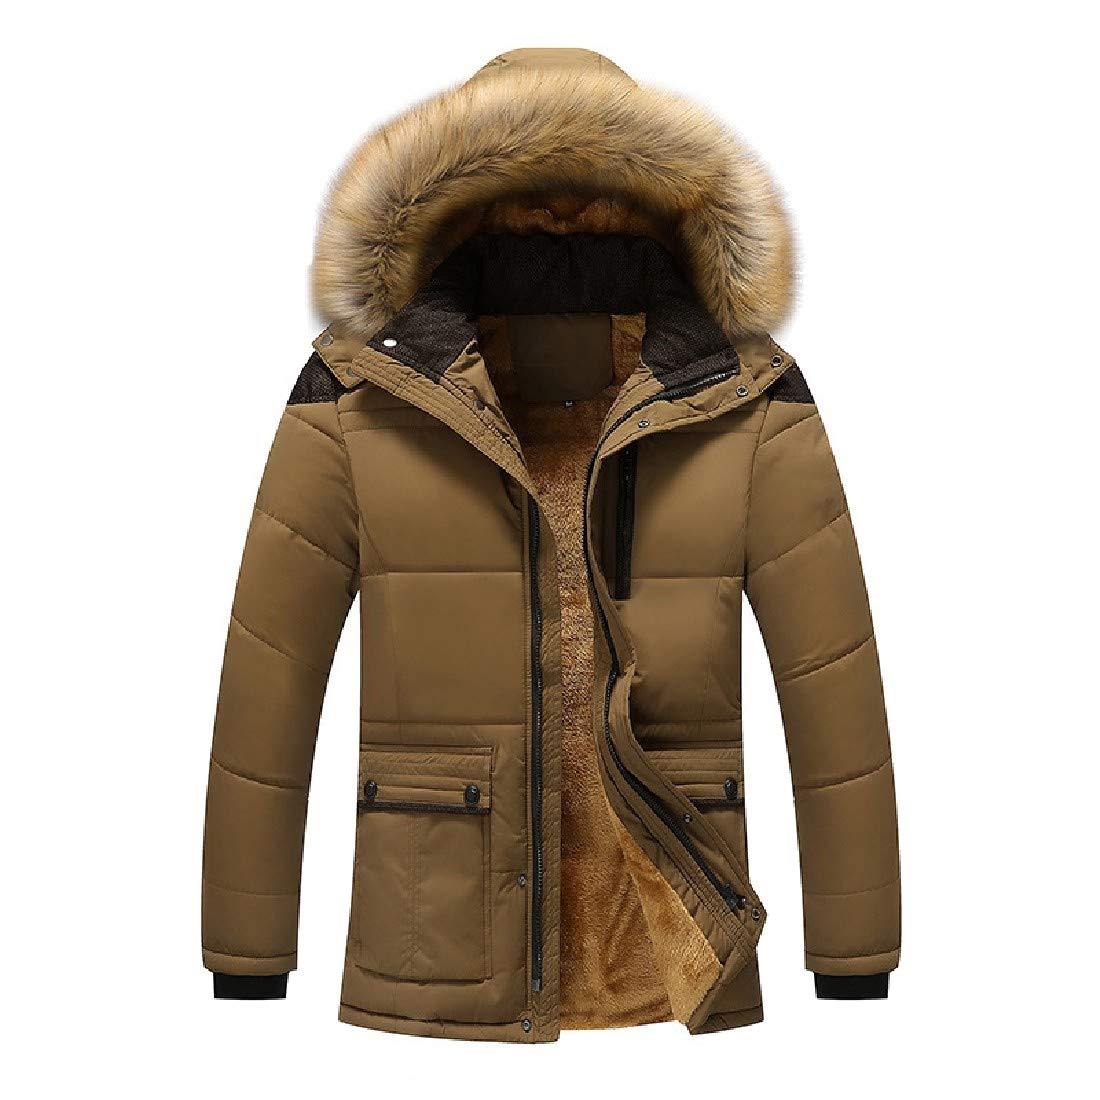 YUNY Mens Faux Fur Hooded Oversized Quilted Parka Jacket Outdoor Coat AS1 S